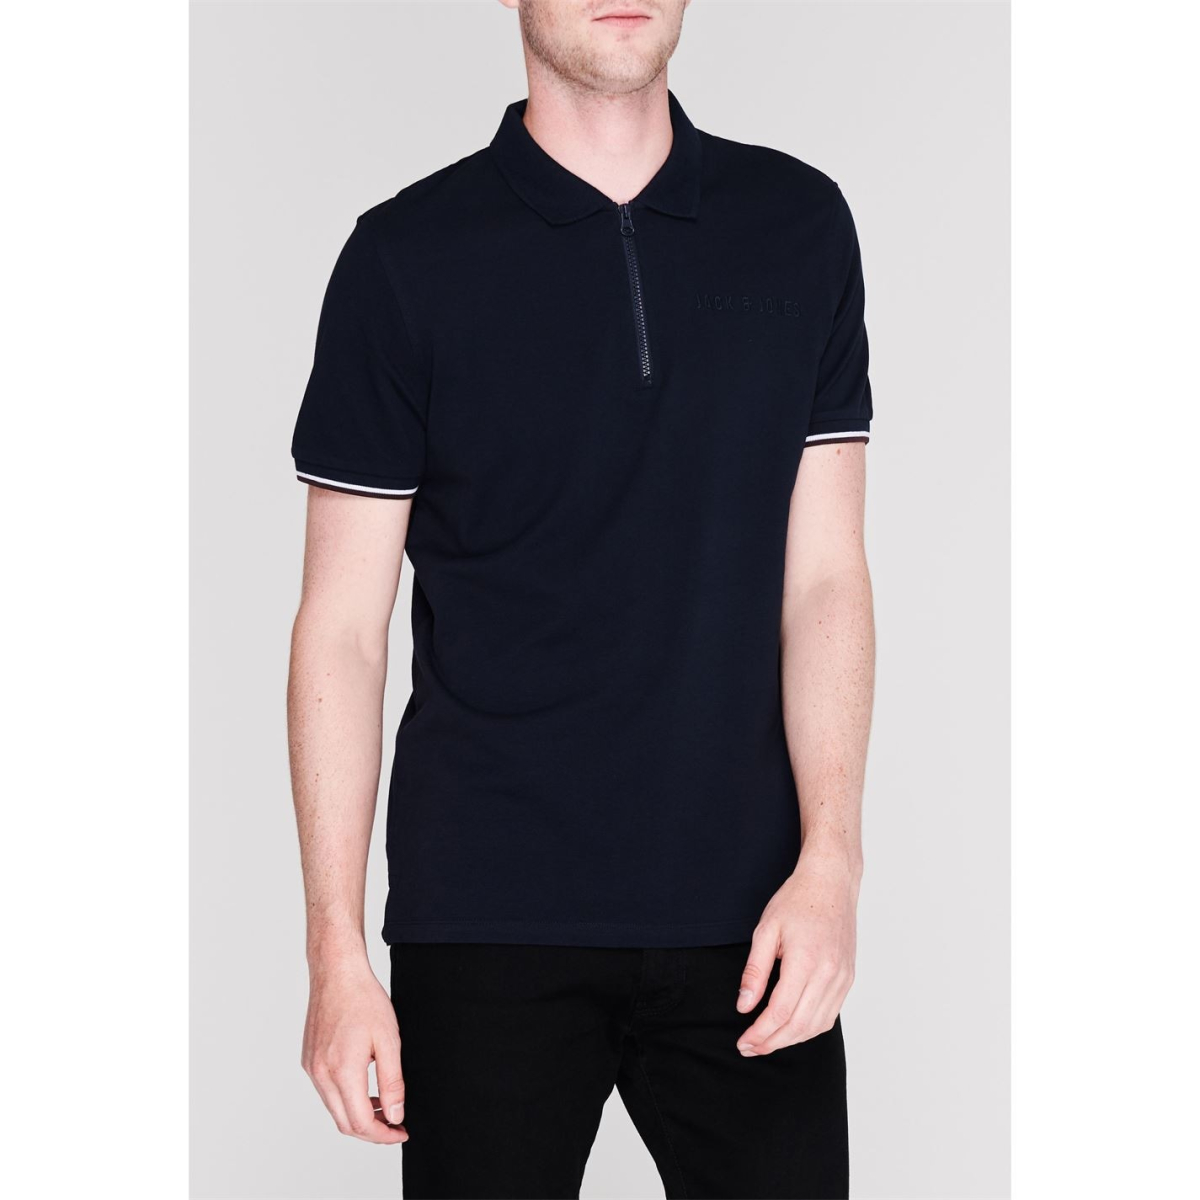 Jack And Jones Poloshirt T-Shirt Polohemd Herren 8851